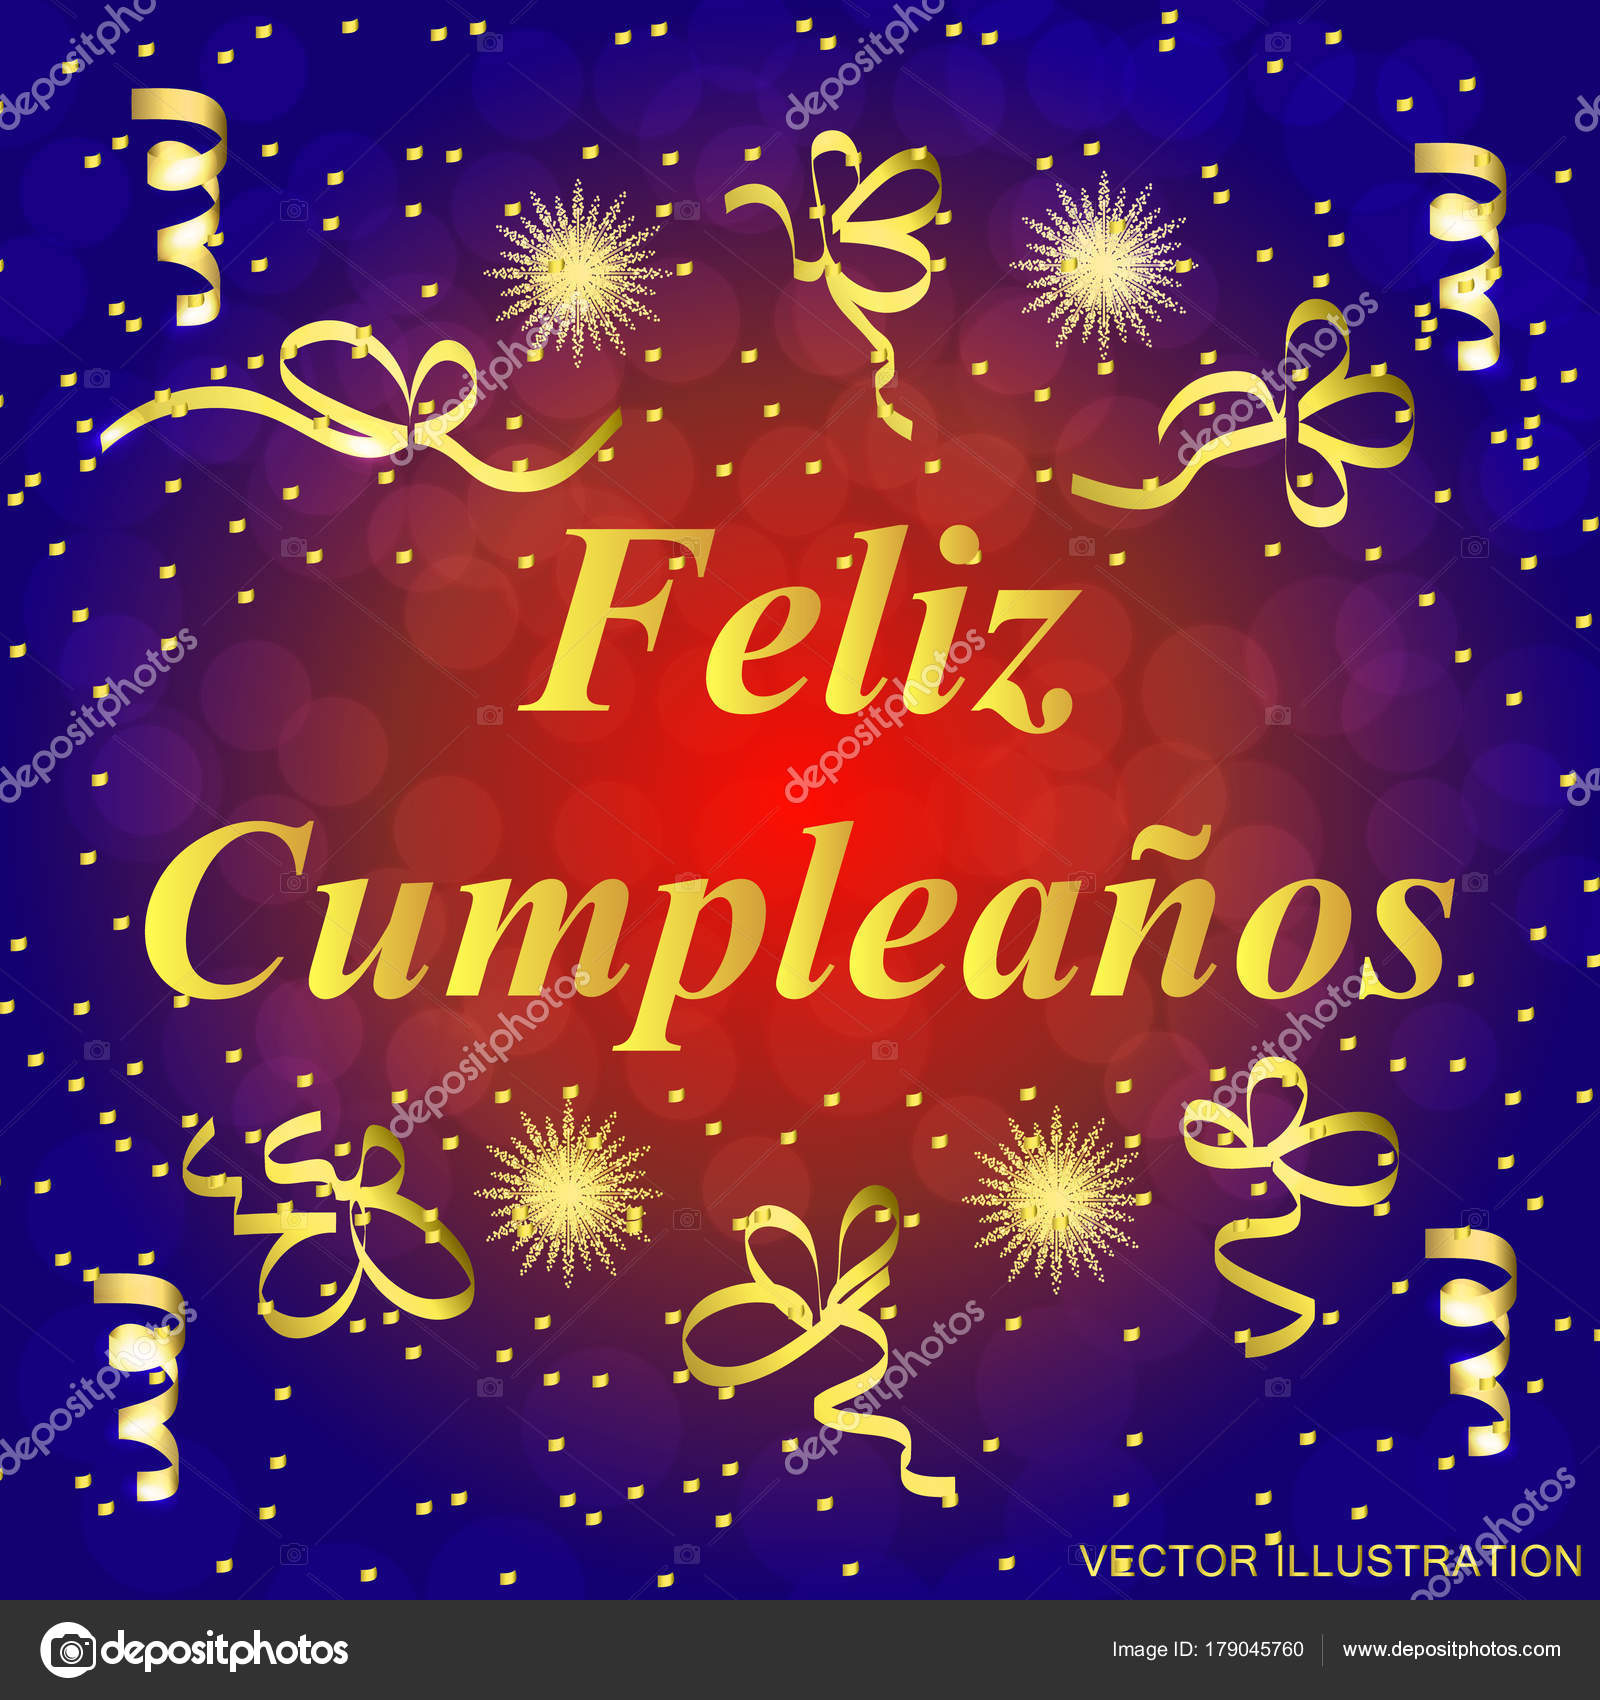 Happy Birthday In Spanish.Pictures Birthday Greetings In Spanish Happy Birthday In